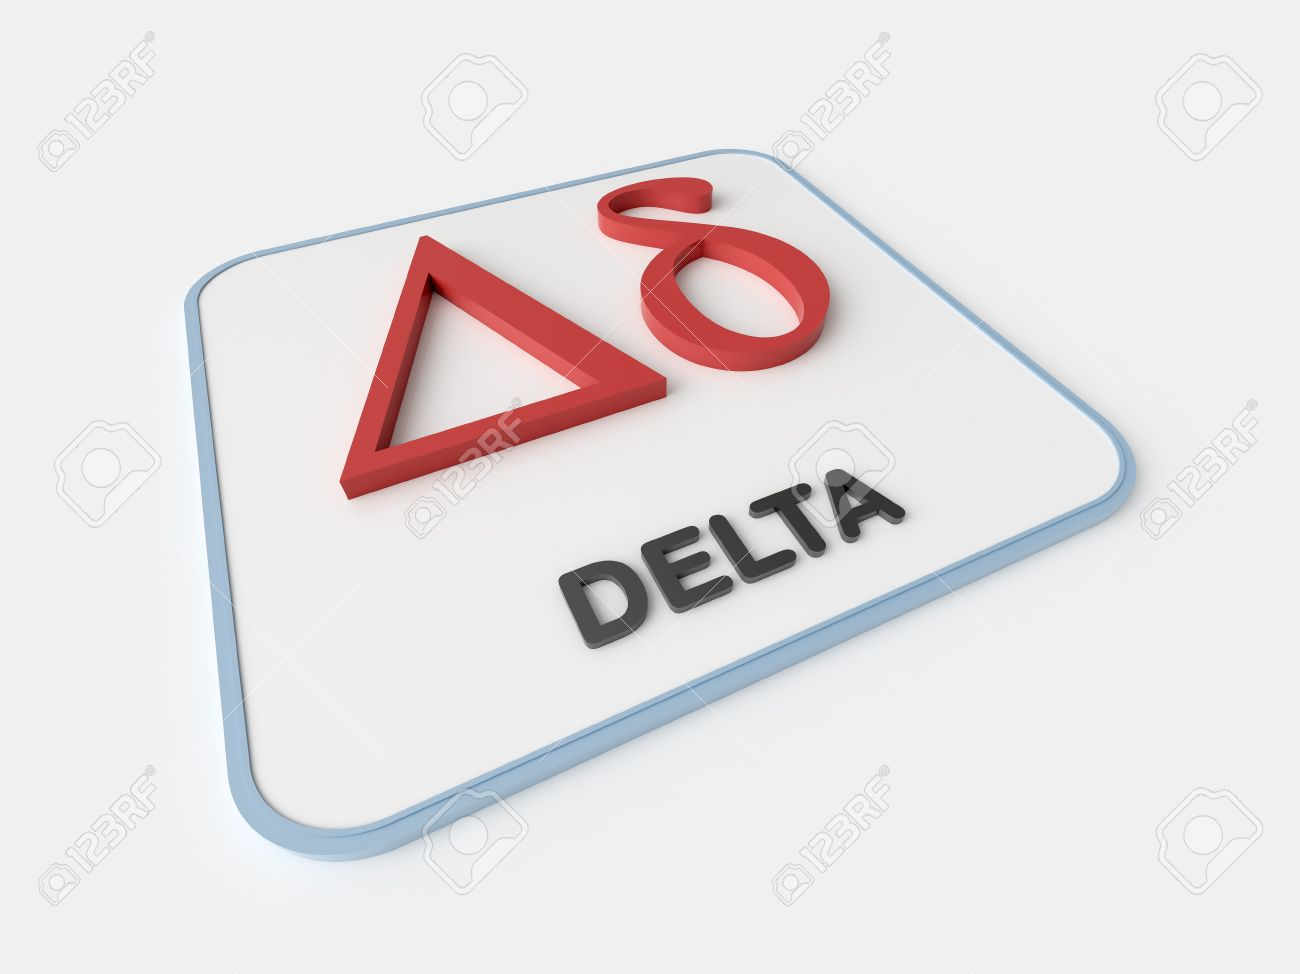 Delta greek symbol on white display board science and delta greek symbol on white display board science and mathematical concept stock photo 46428703 buycottarizona Images